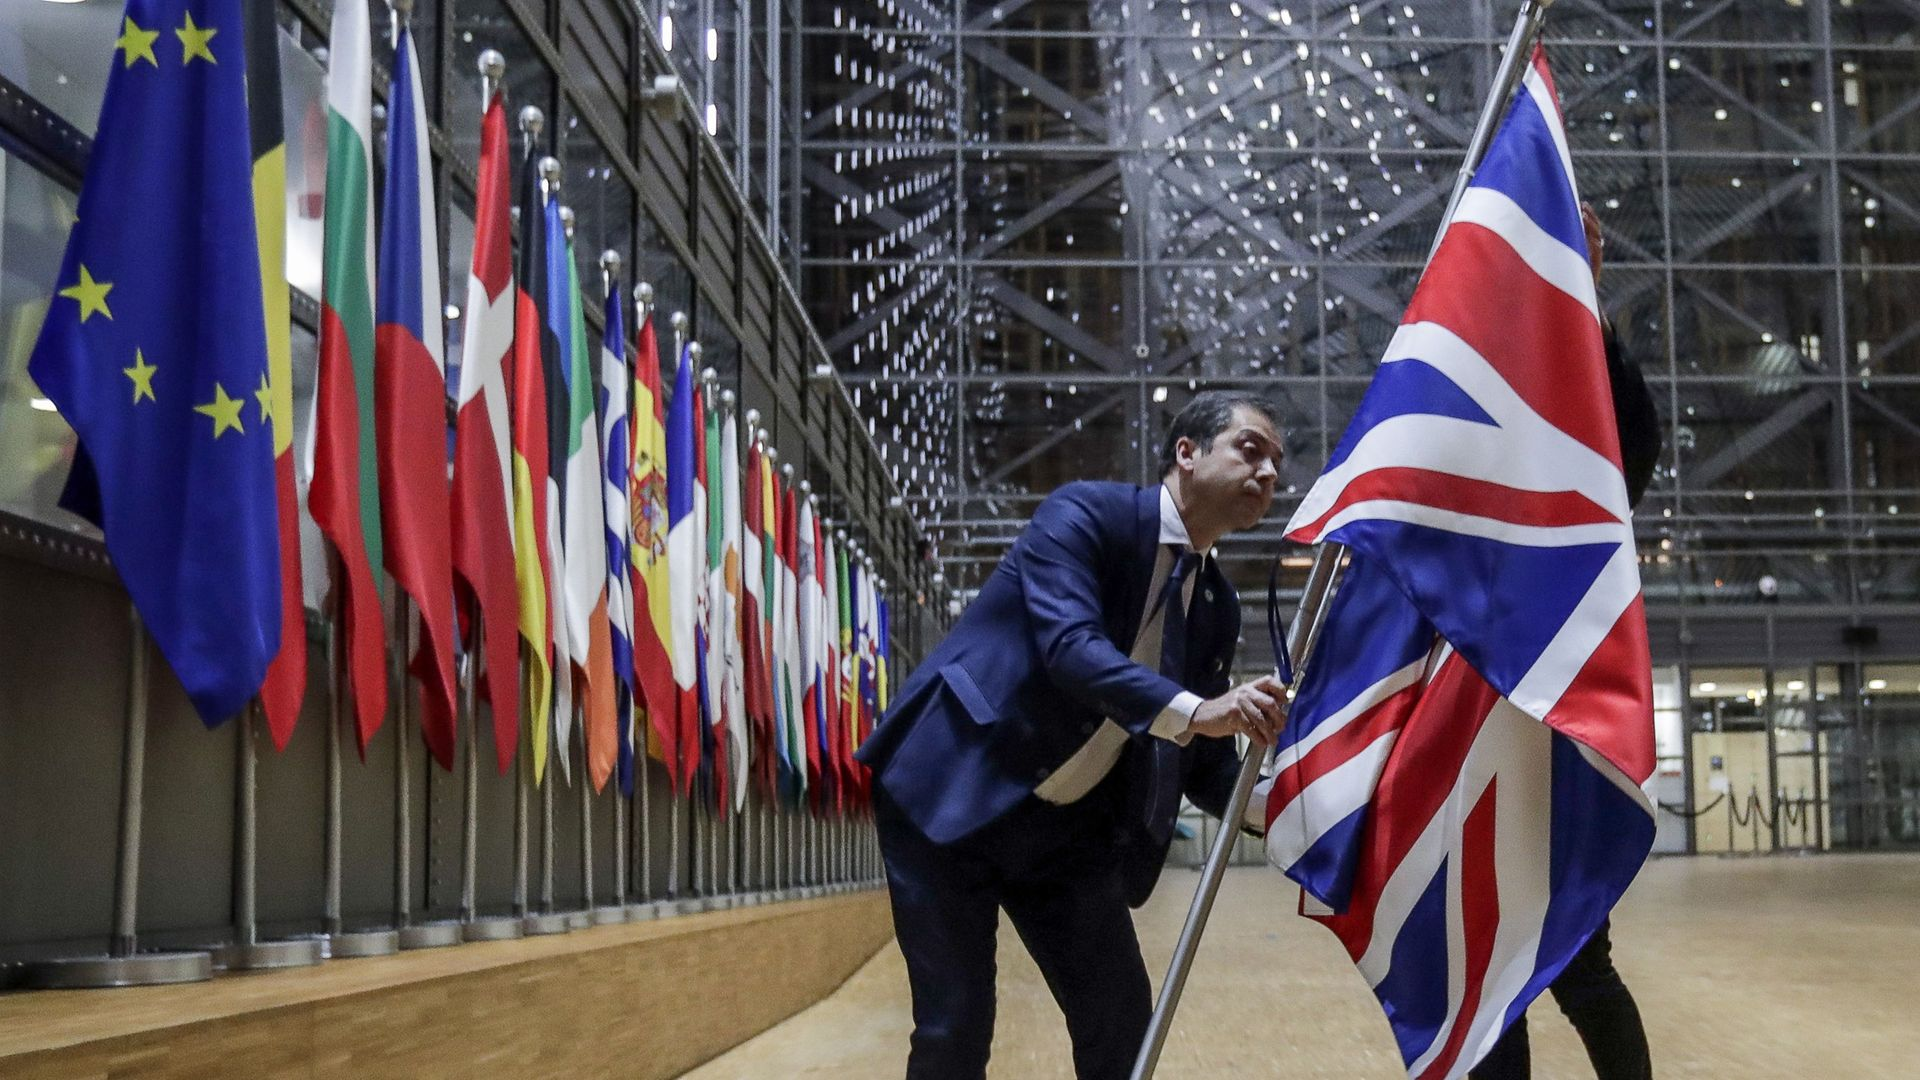 EU Council staff members remove the United Kingdom's flag from the European Council building in Brussels - Credit: POOL/AFP via Getty Images